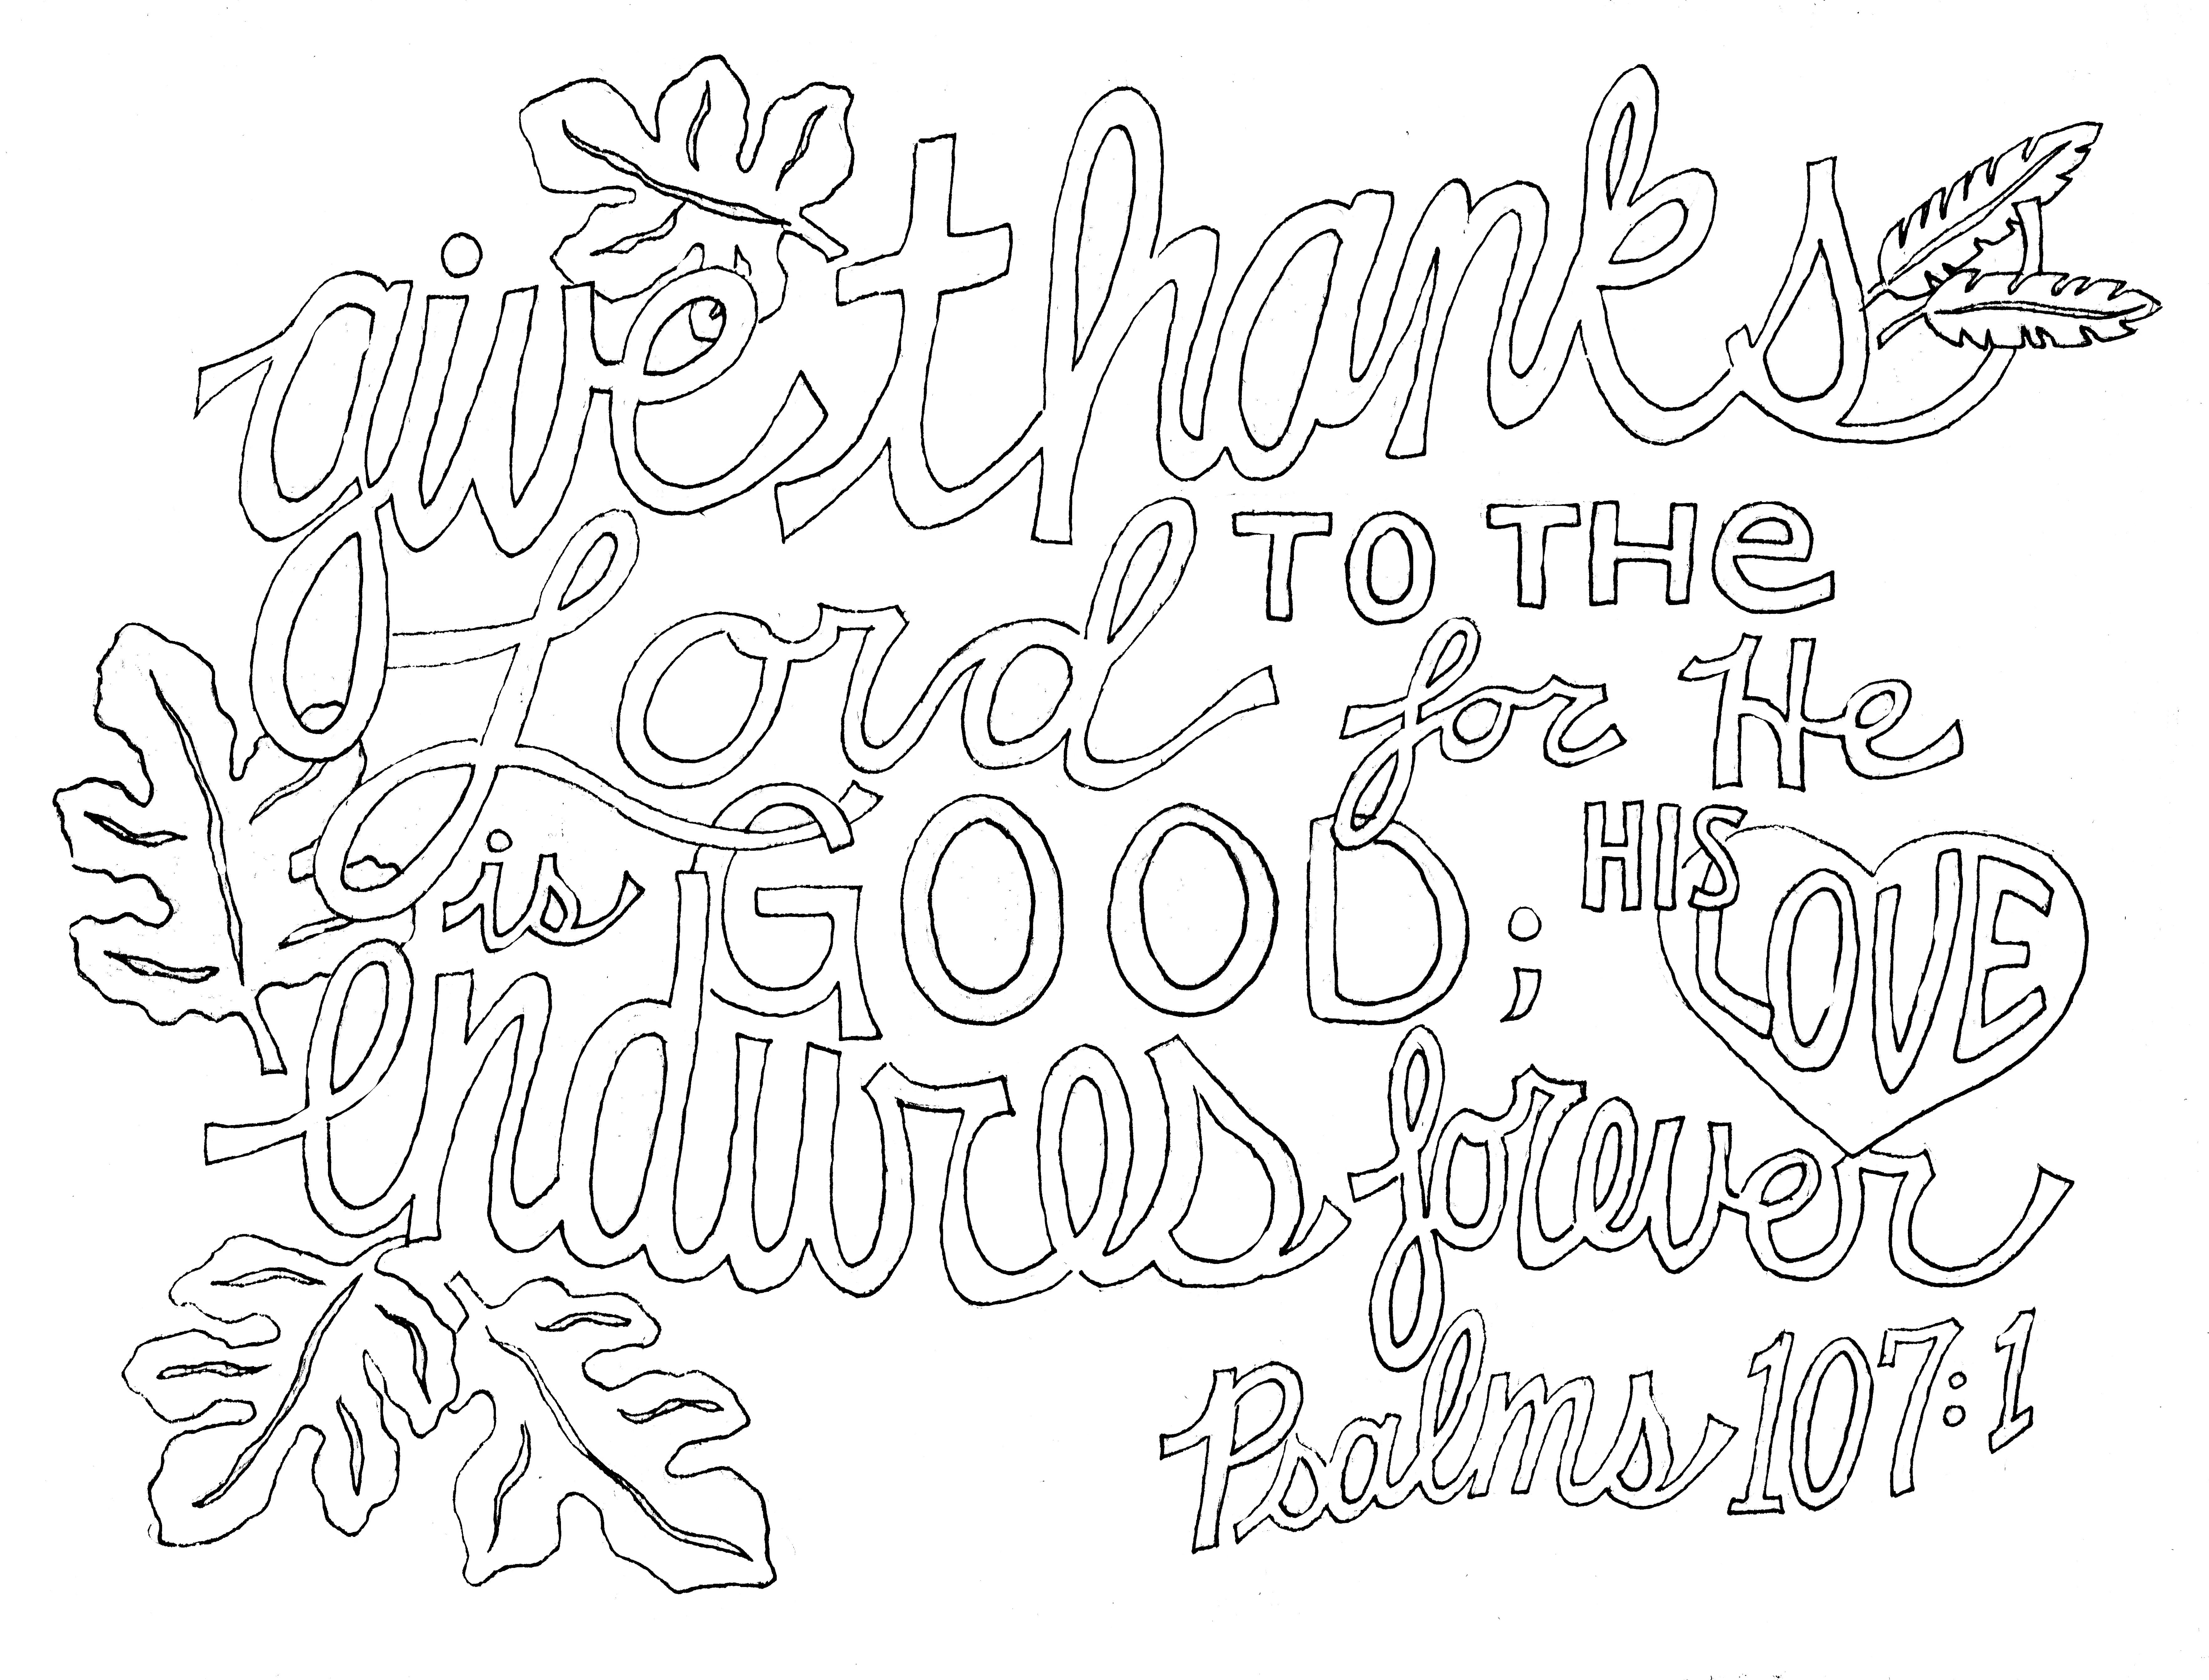 Psalm 1071 FromVictoryRoad